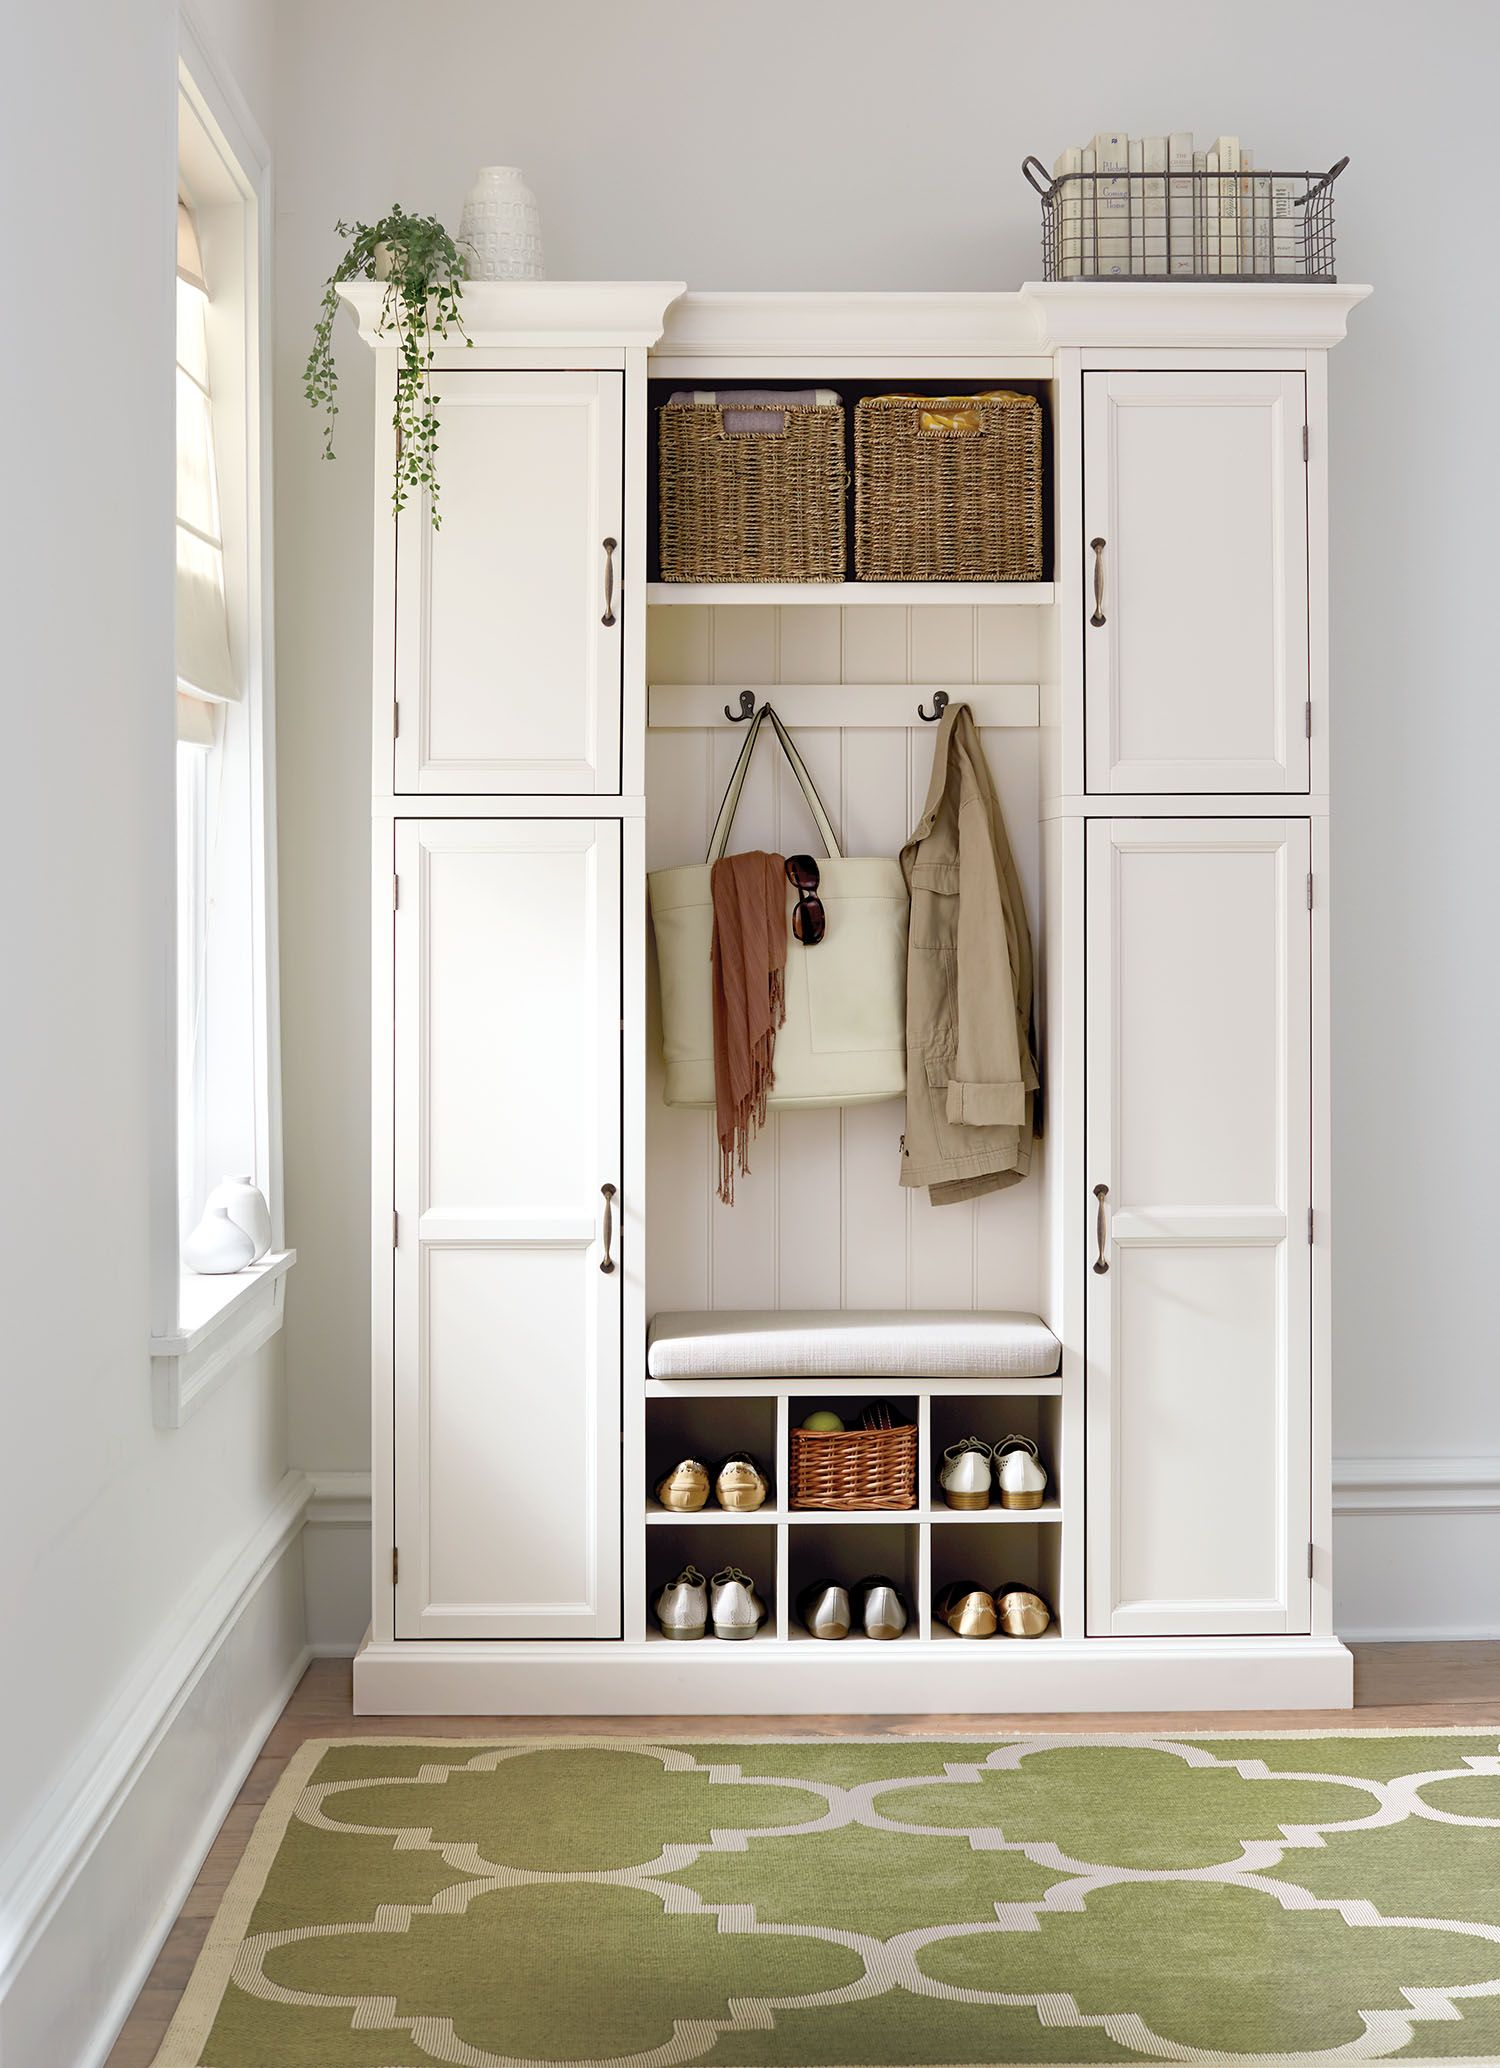 Awesome Create Storage Space Where There Isnu0027t Any. This All In One Mudroom Piece  Is Ideal For Entryways That Lack Coat Closets Or For Mudrooms.  #organizewithhdc